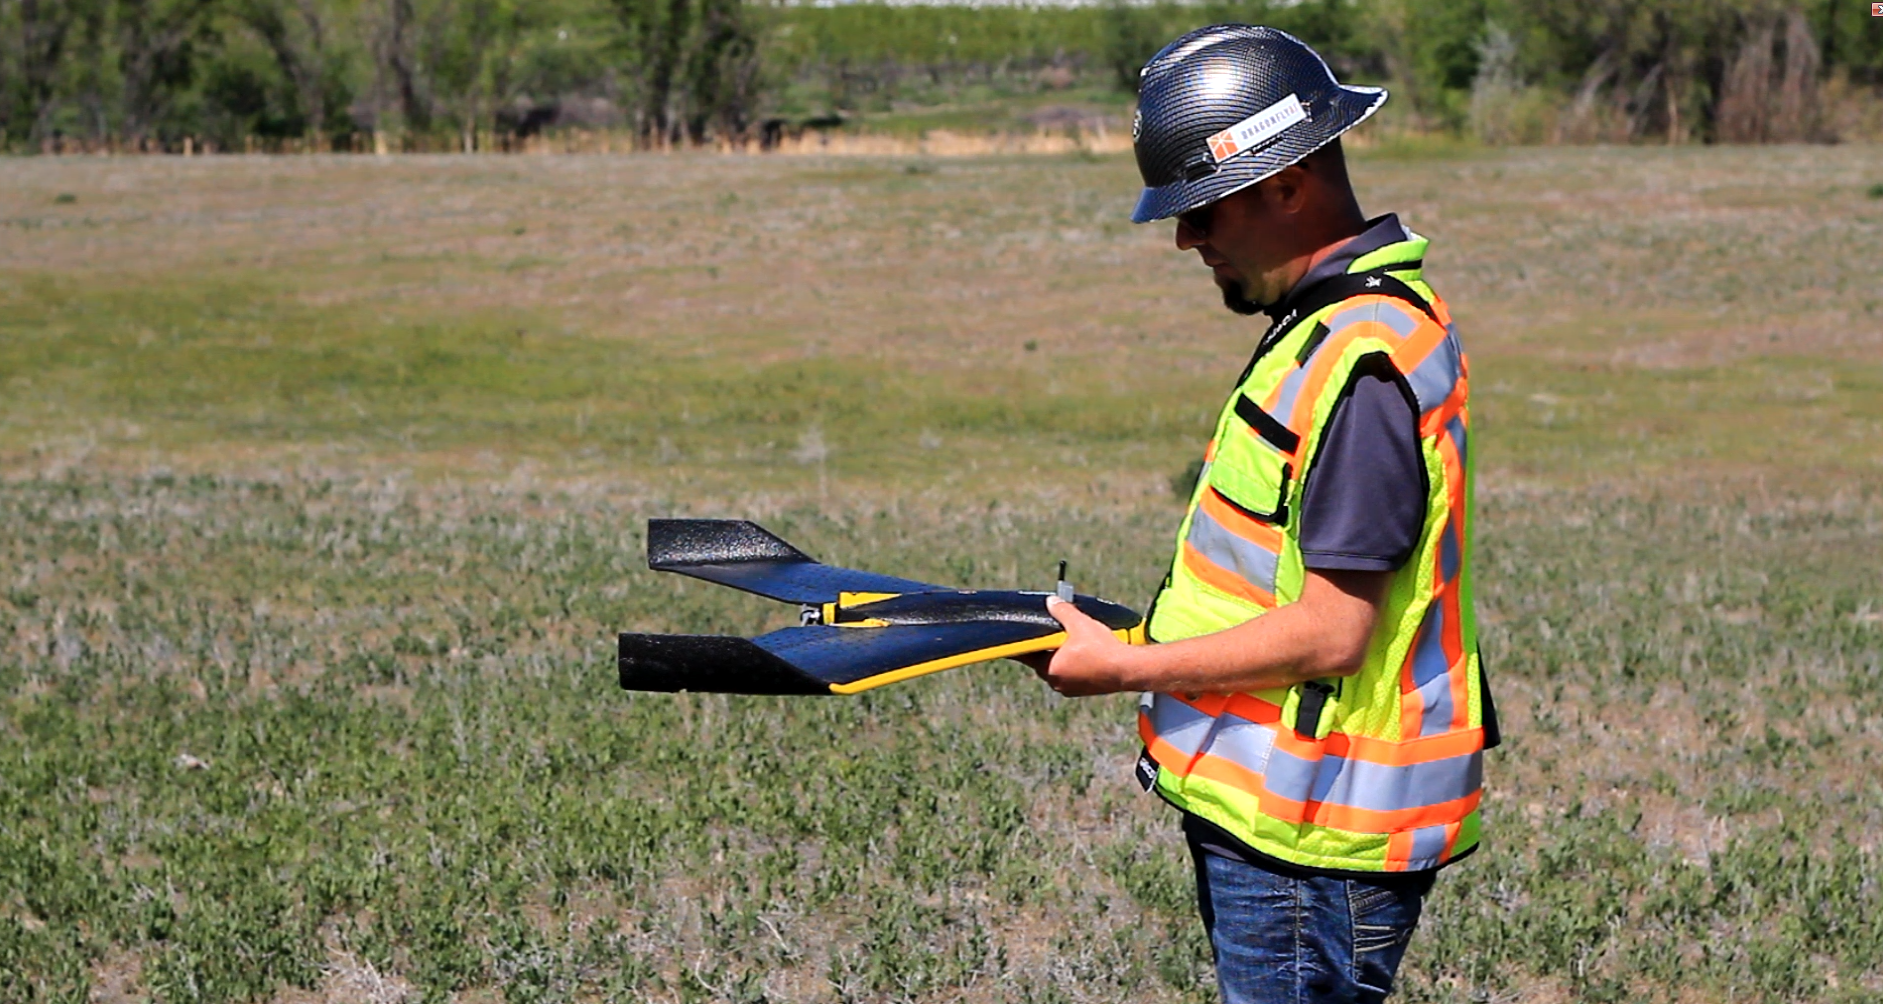 Drones in O&G: Value added, or just cool to talk about?